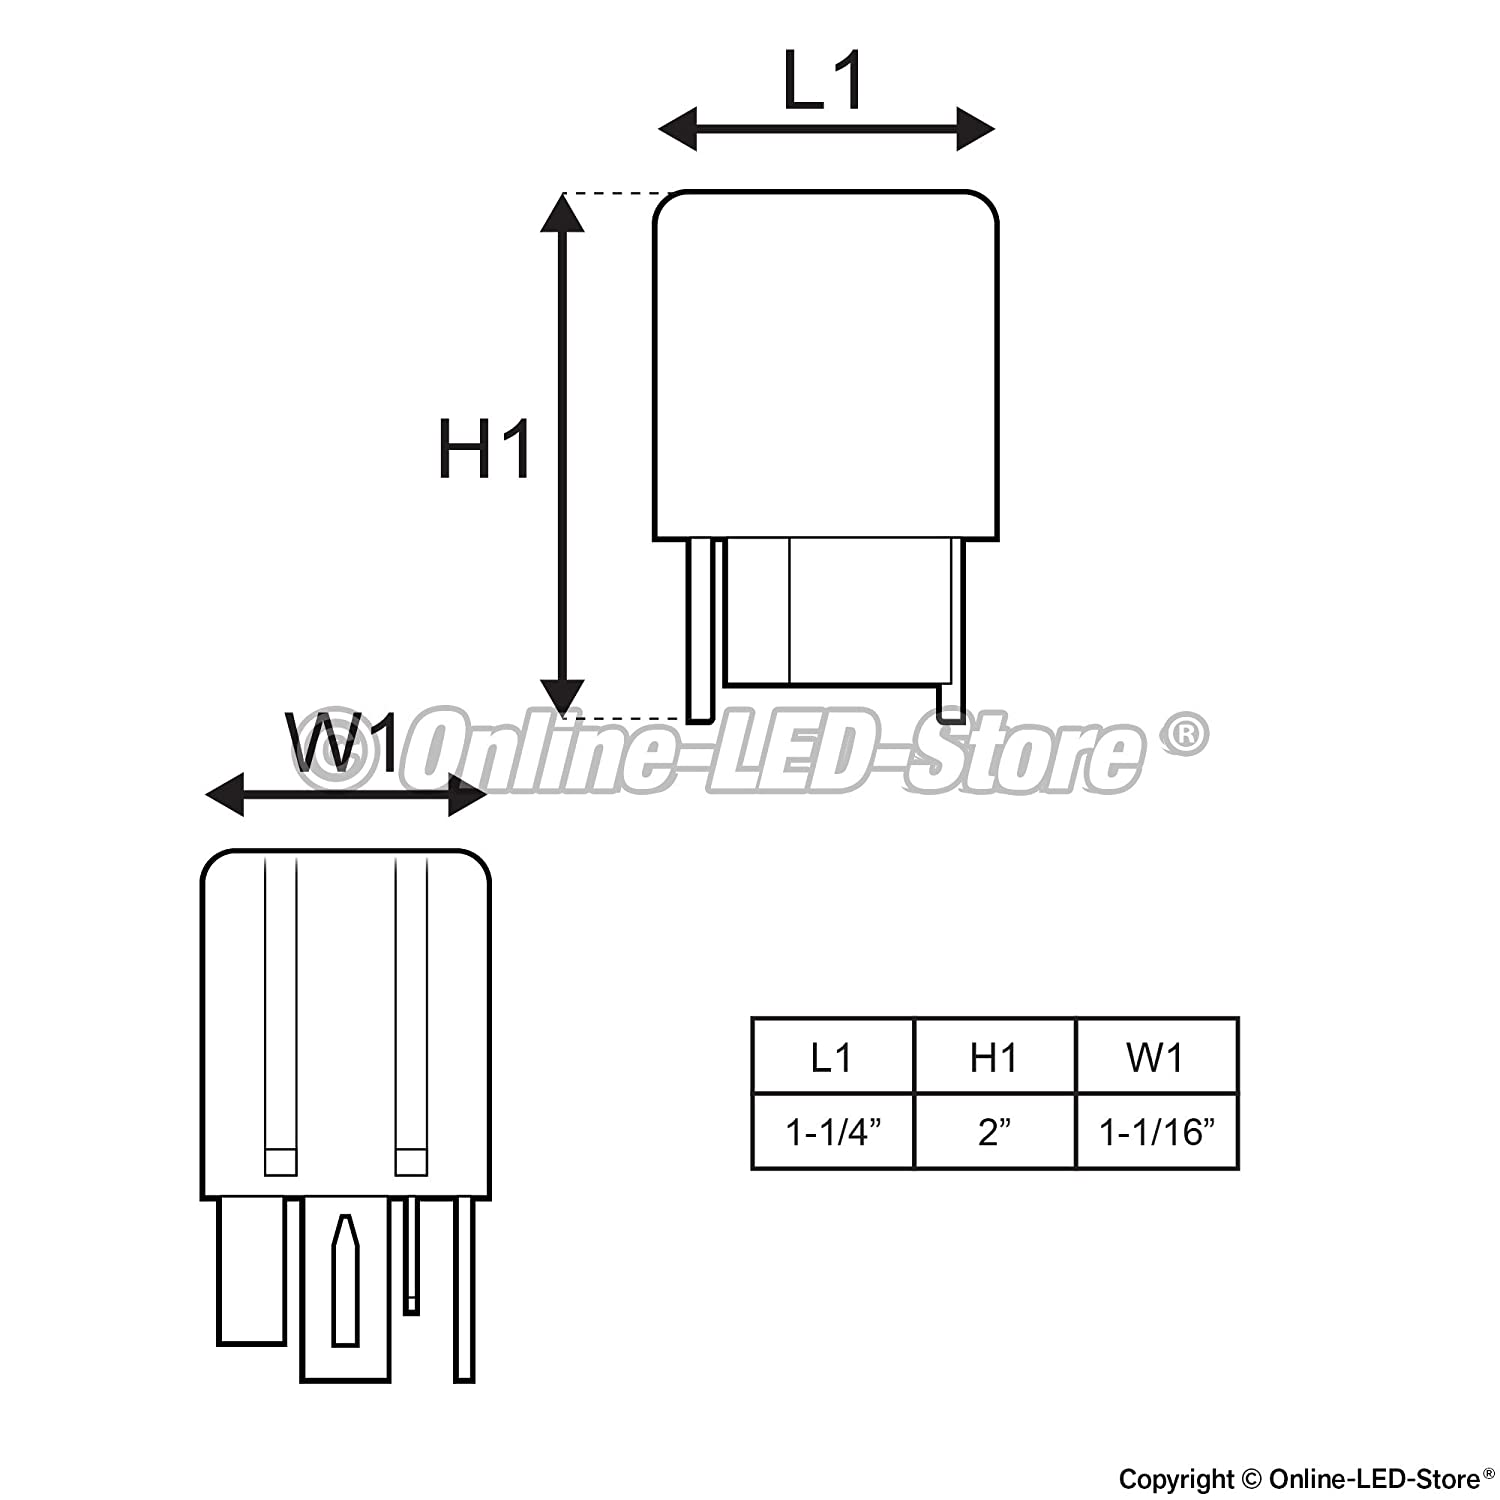 Online Led Store Rtt7121a 12v 40a 4 Pin Relay Direct 1990 Toyota Pickup Starter Replacement Mechanical Single Pole Throw For